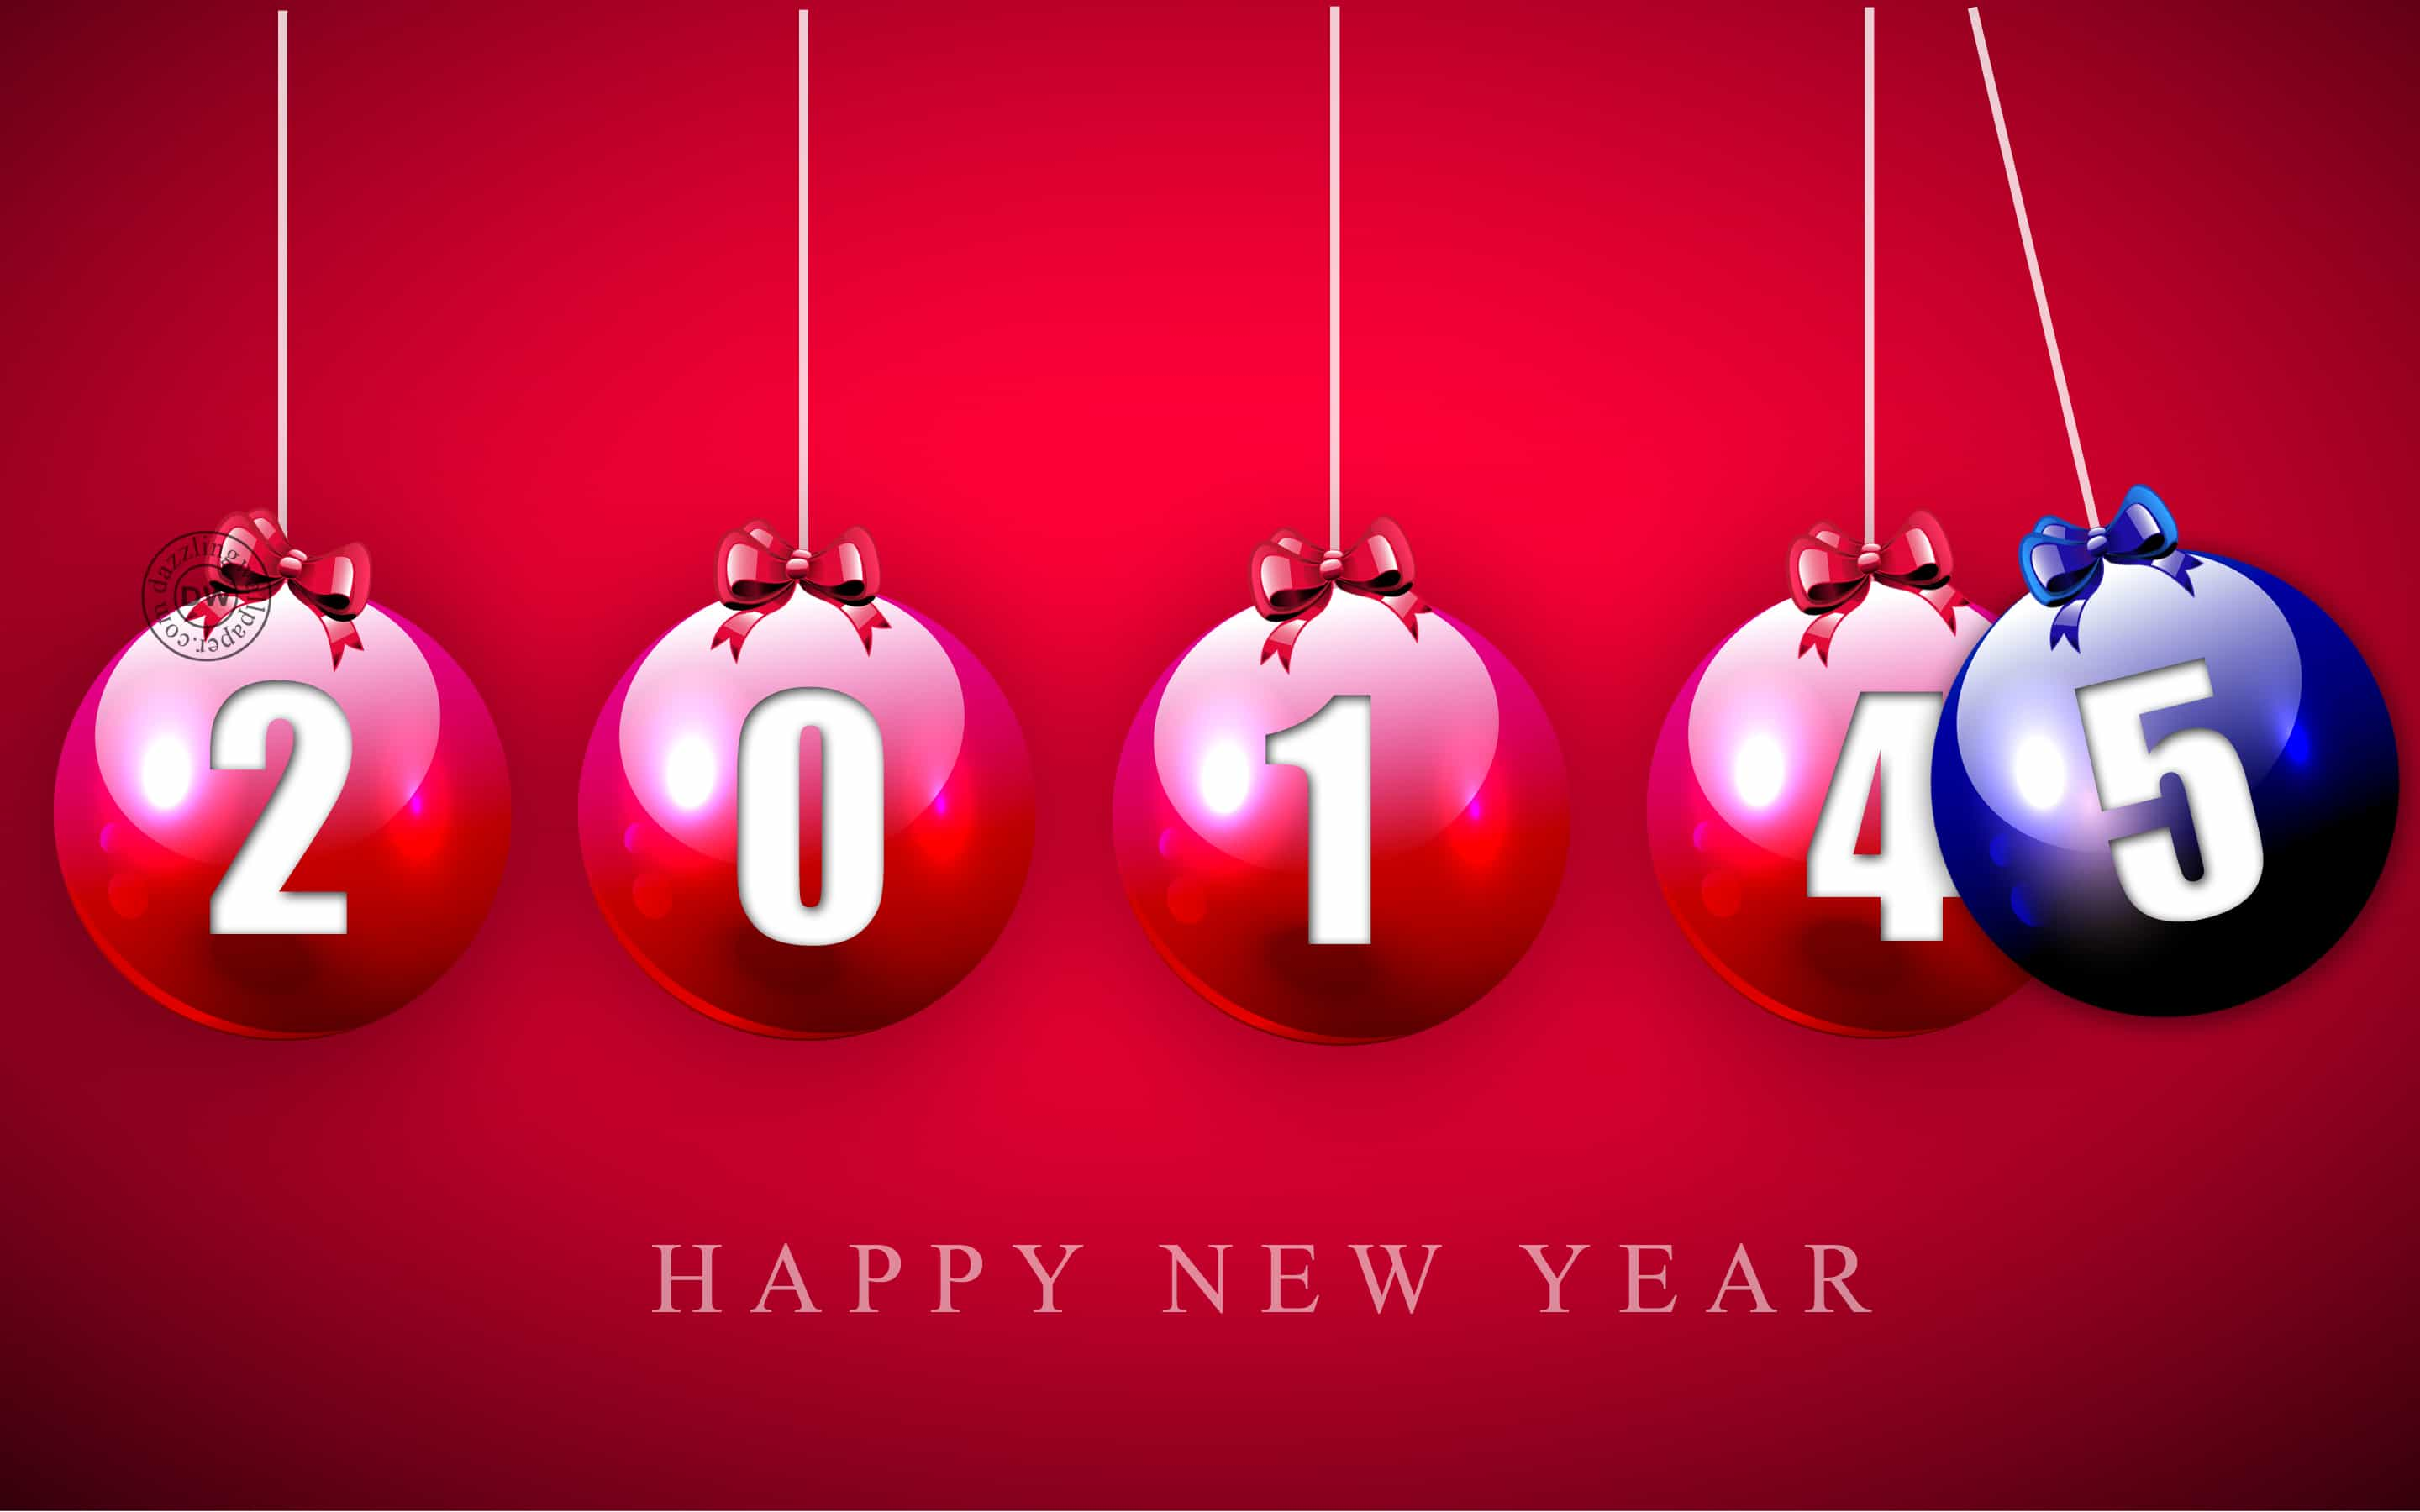 happy_new_year_2015_hd_wallpaper